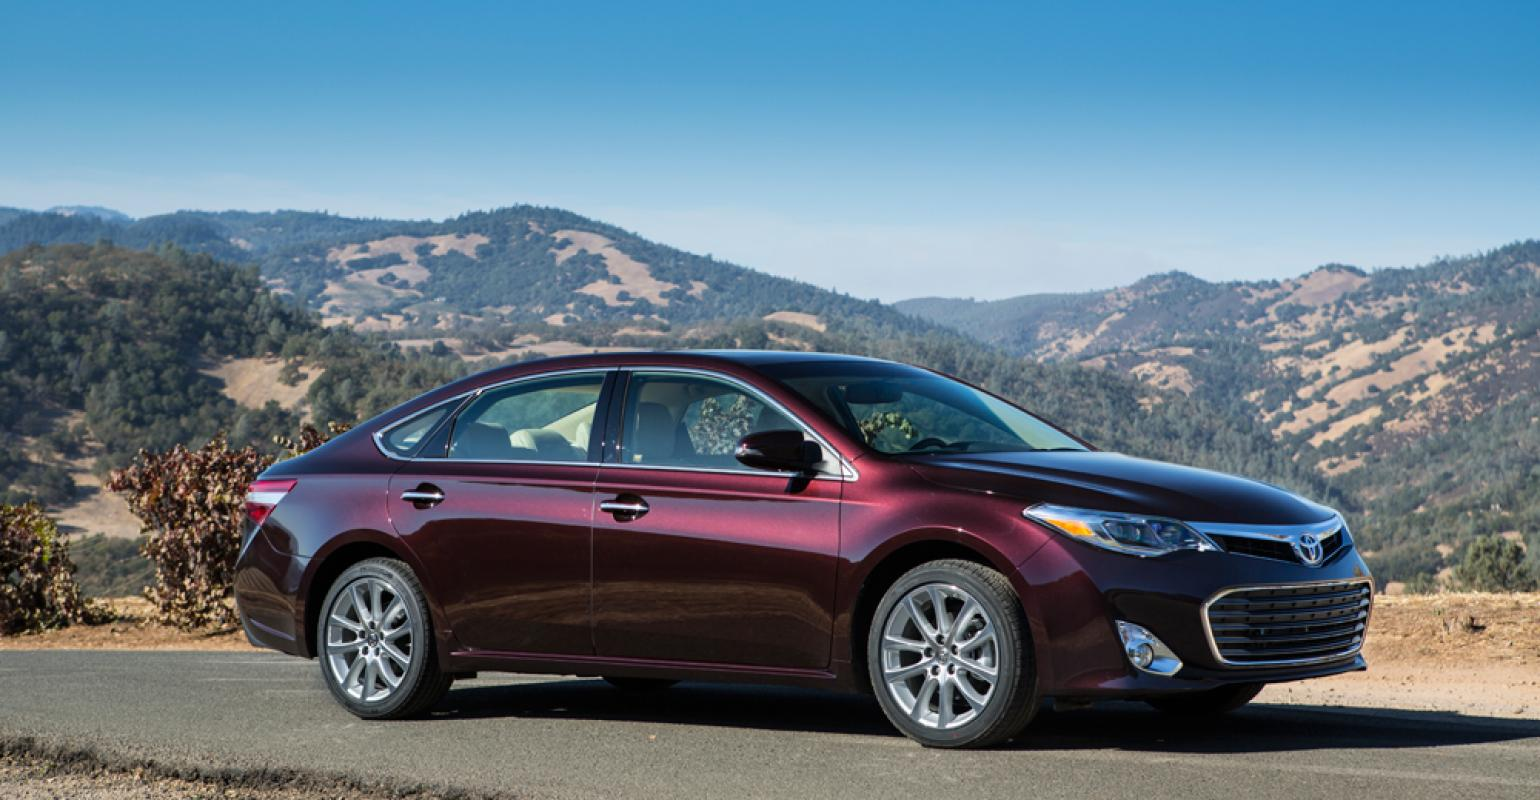 Rsquo13 Toyota Avalon Leaves Stodgy Behind With Moreaggressive Design